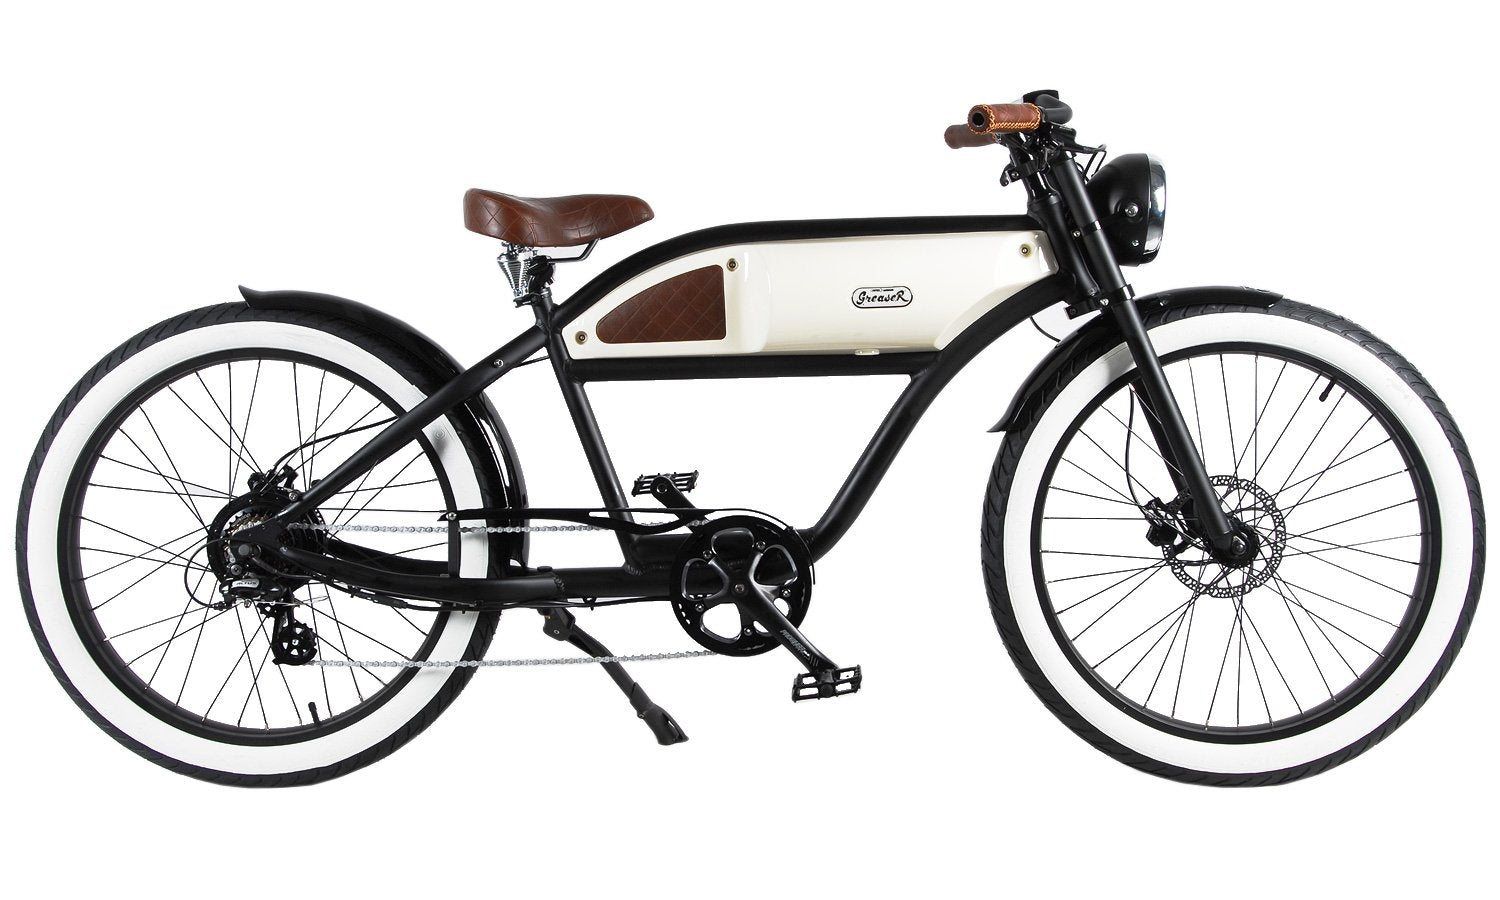 Michael Blast Greaser 500w Electric Bike Cafe Racer - Black/White